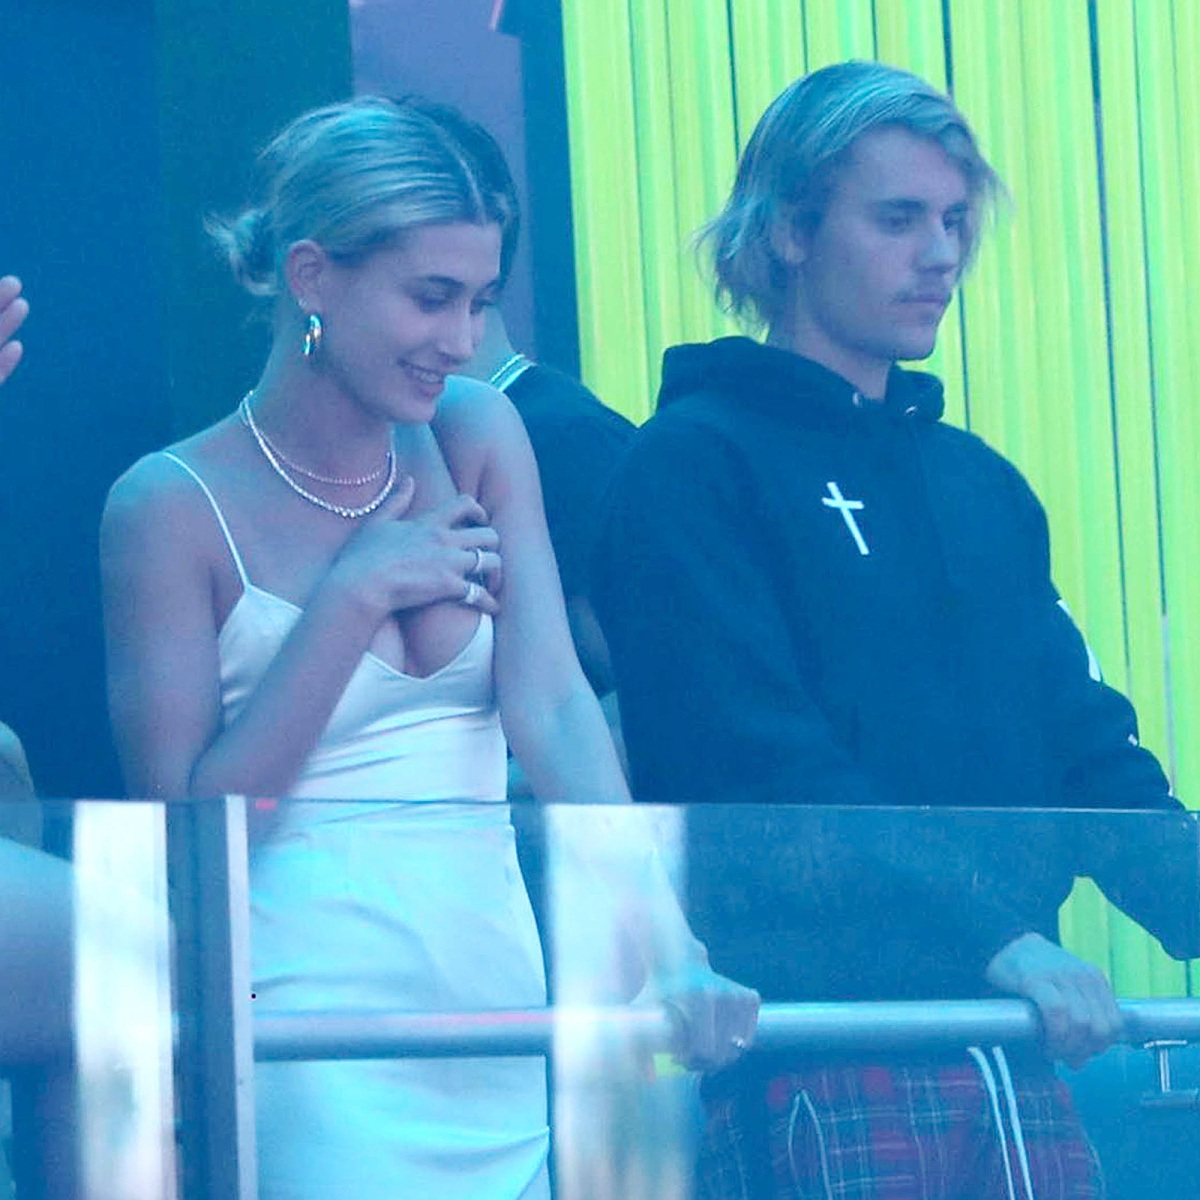 09ed807b5 Justin Bieber and Hailey Baldwin: A Timeline of Their Relationship